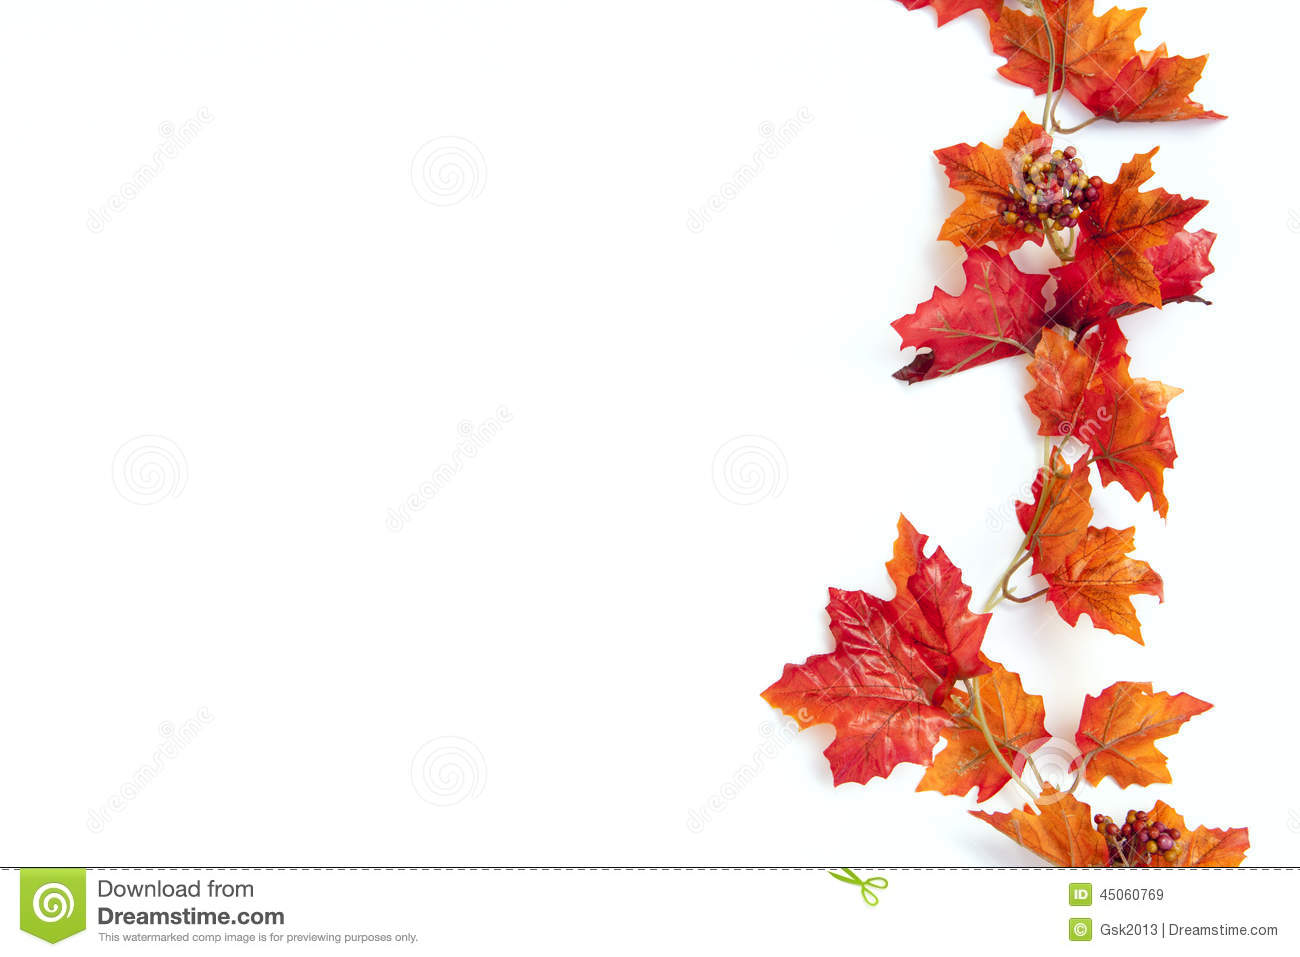 Fall Harvest Wallpaper Backgrounds Autumn Thanksgiving Background Stock Image Image 45060769